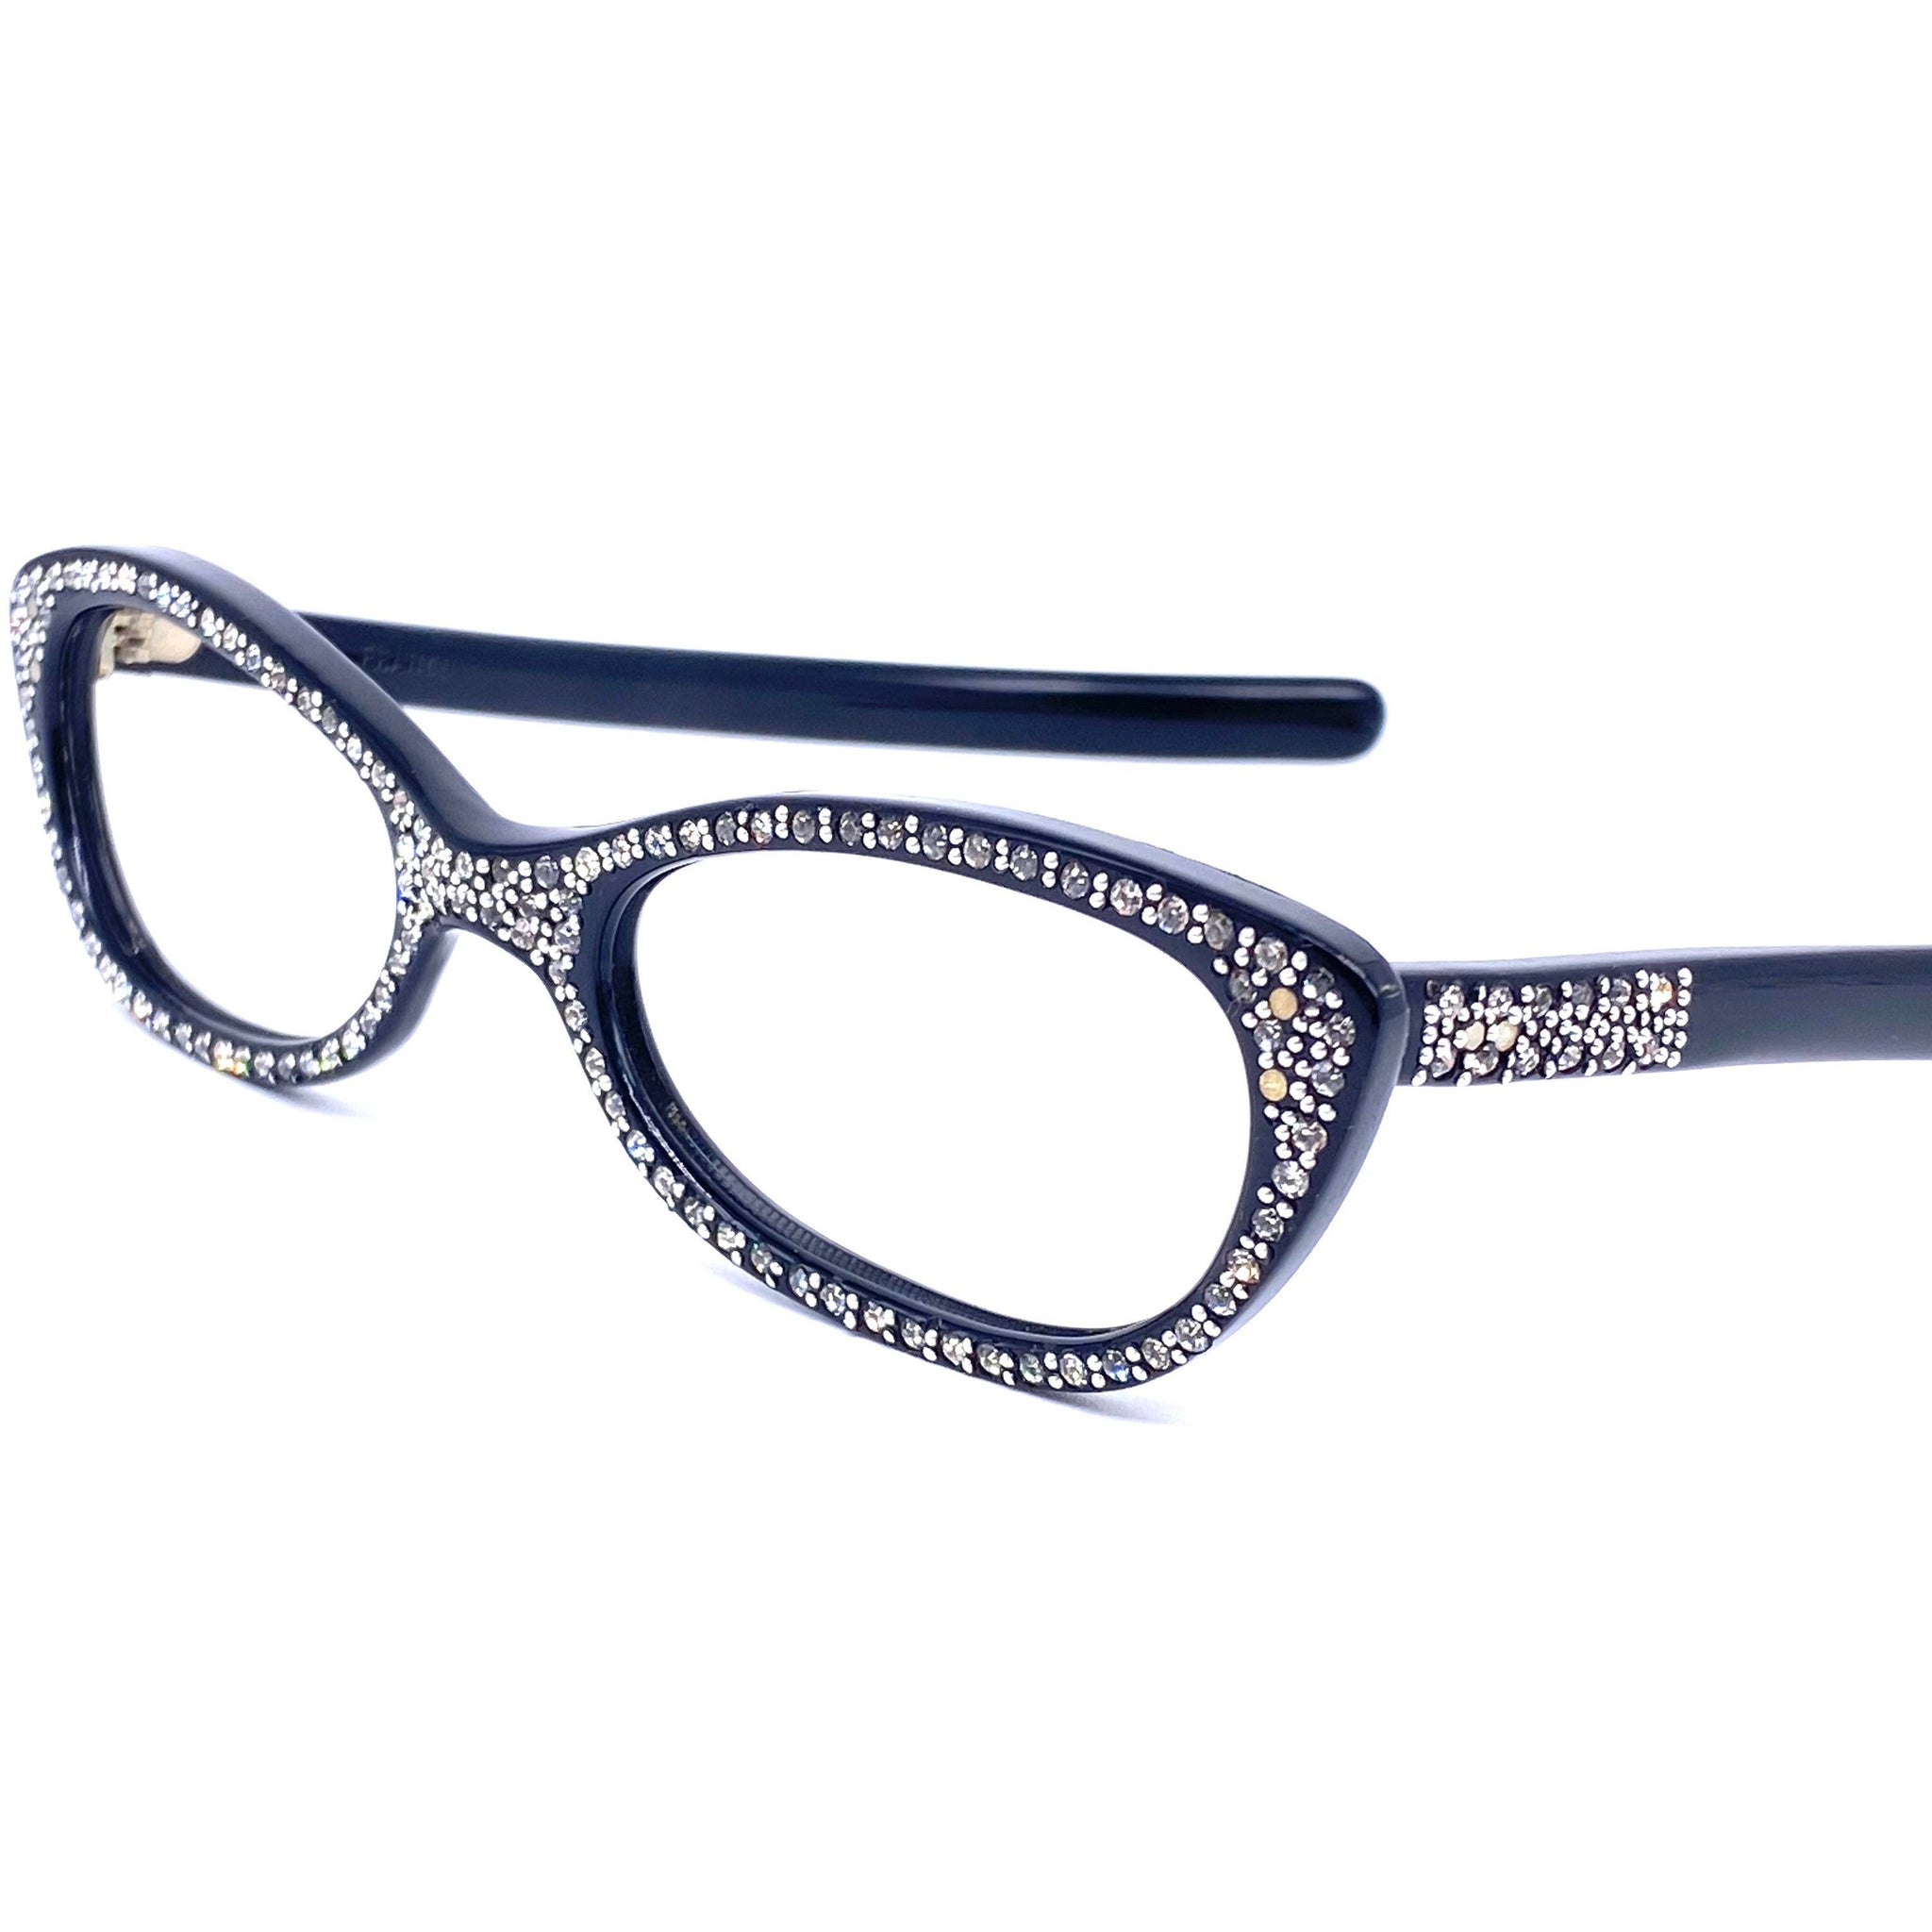 Stunning cateye eyeglasses with rhinestones sober, frames made in France, 1950s NOS - viceversashop